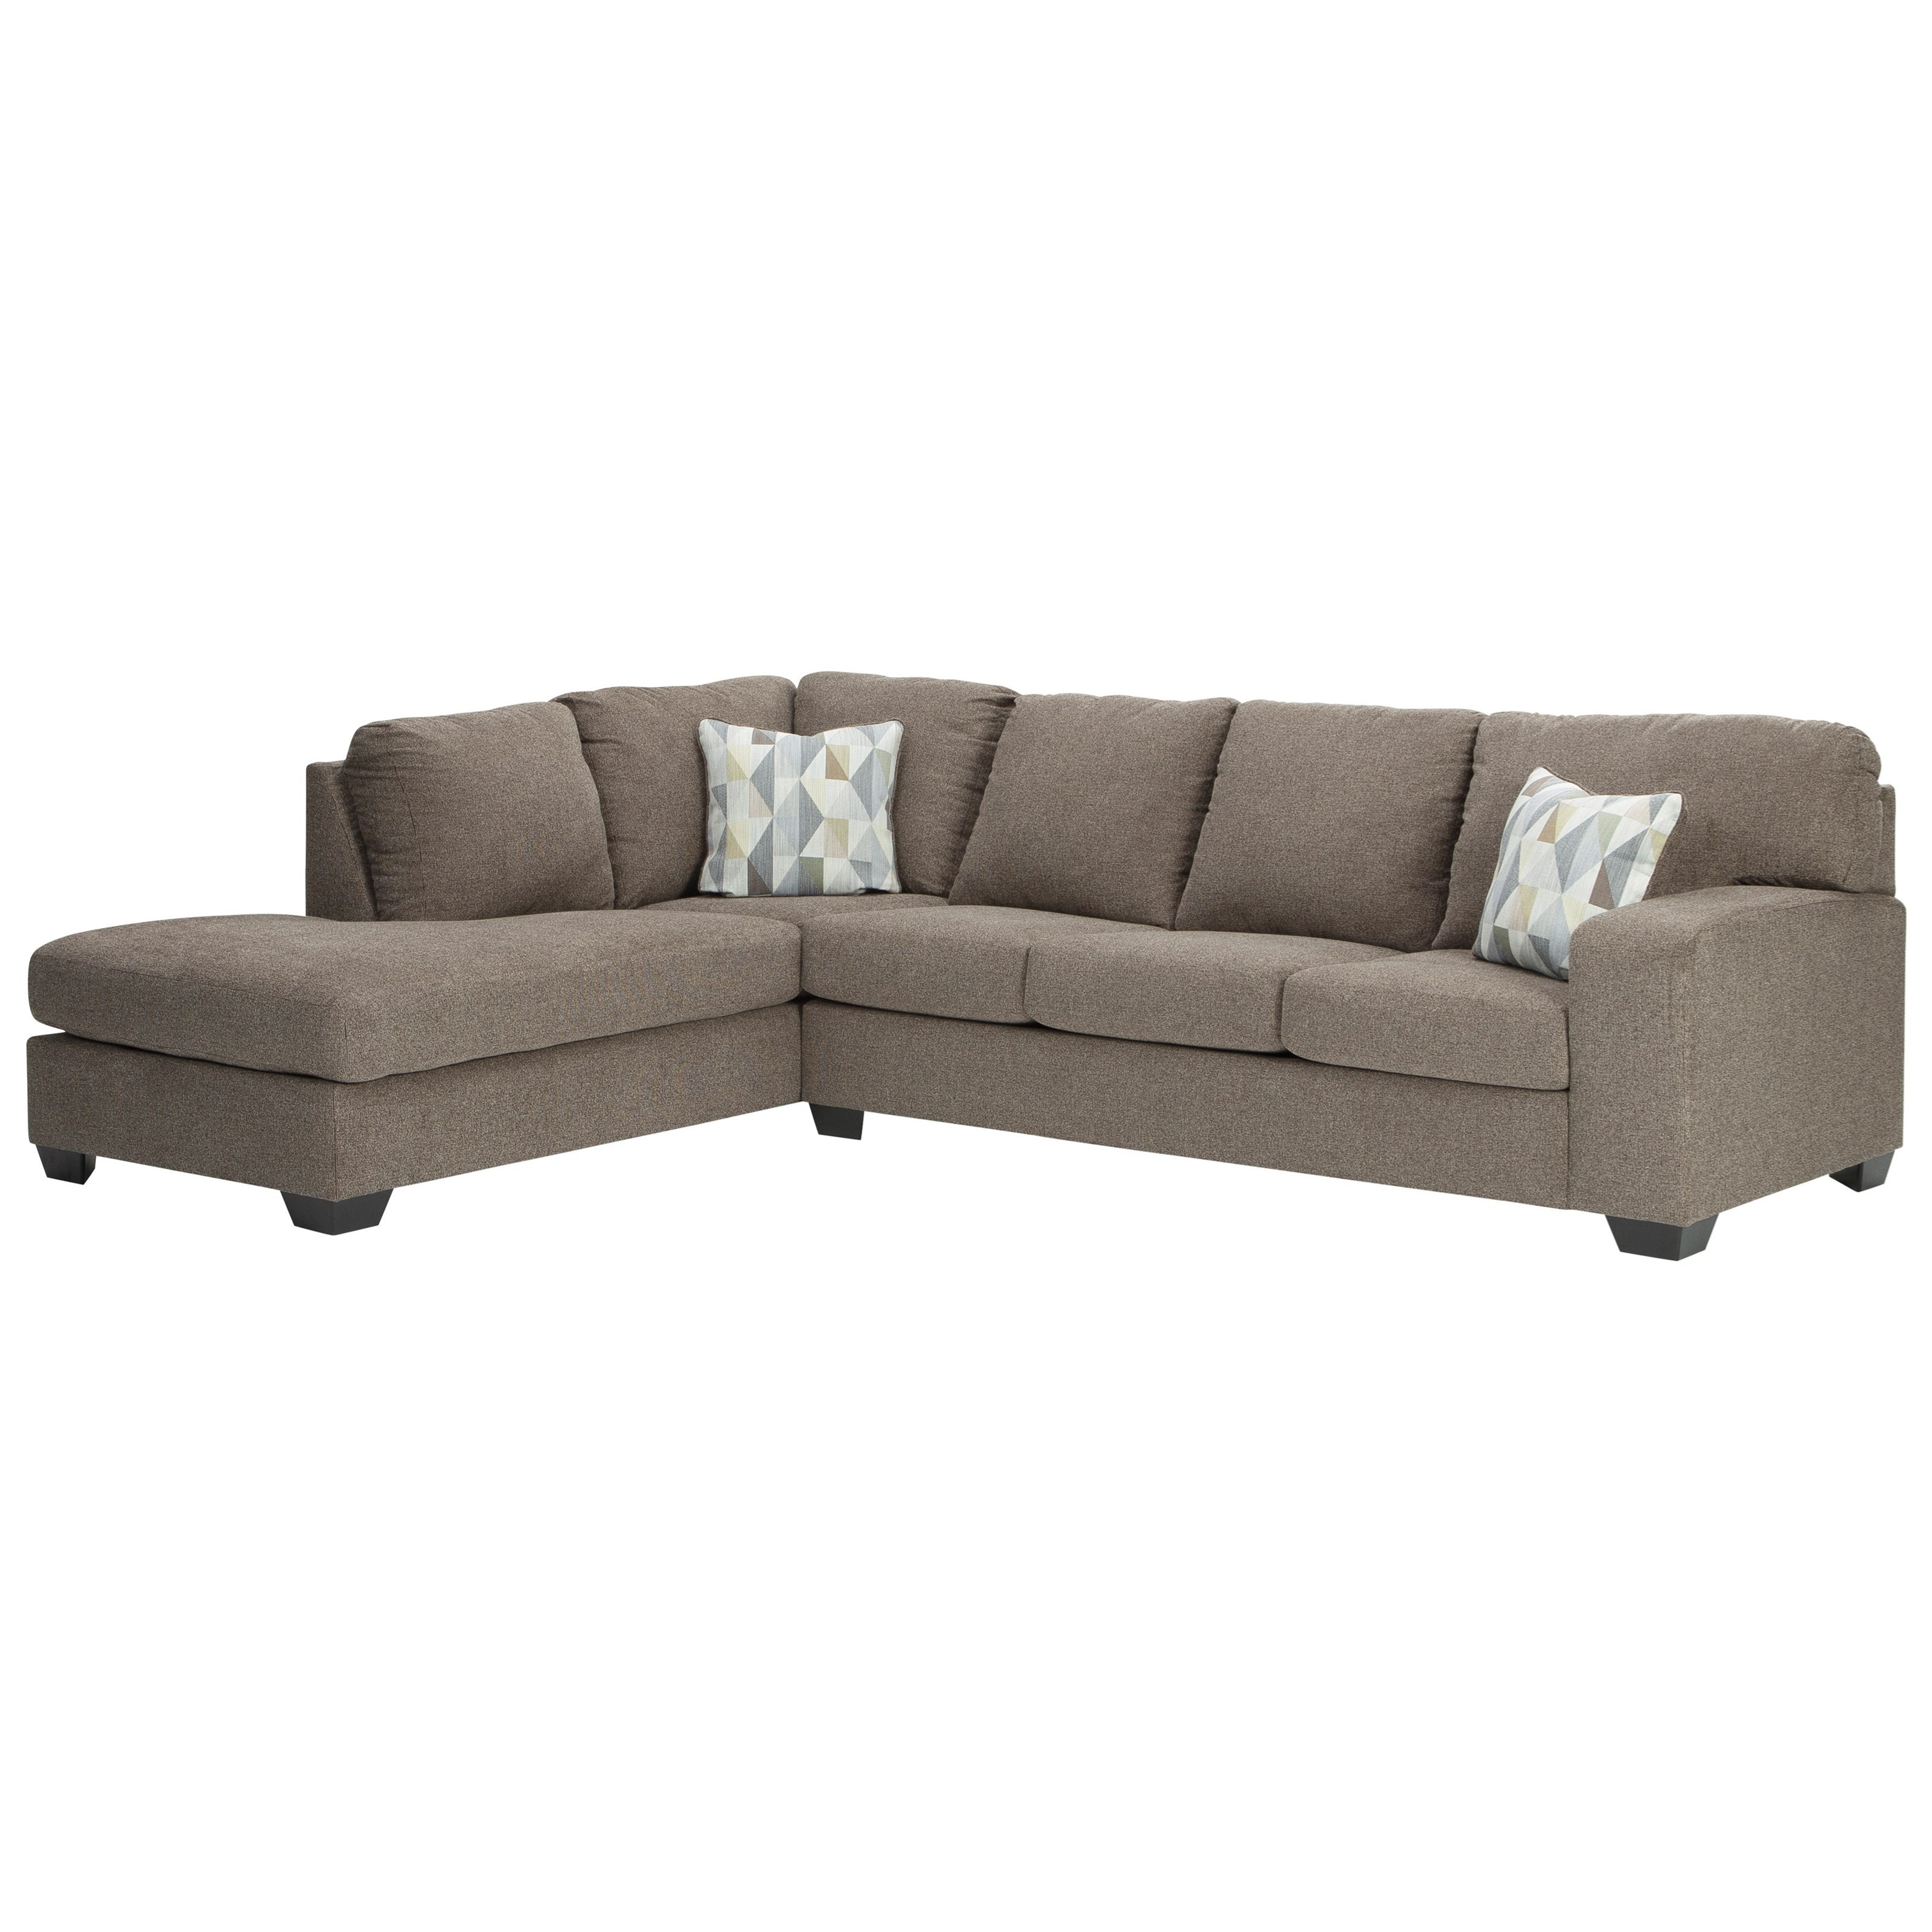 Dalhart 2-Piece Sectional by Benchcraft at Beck's Furniture